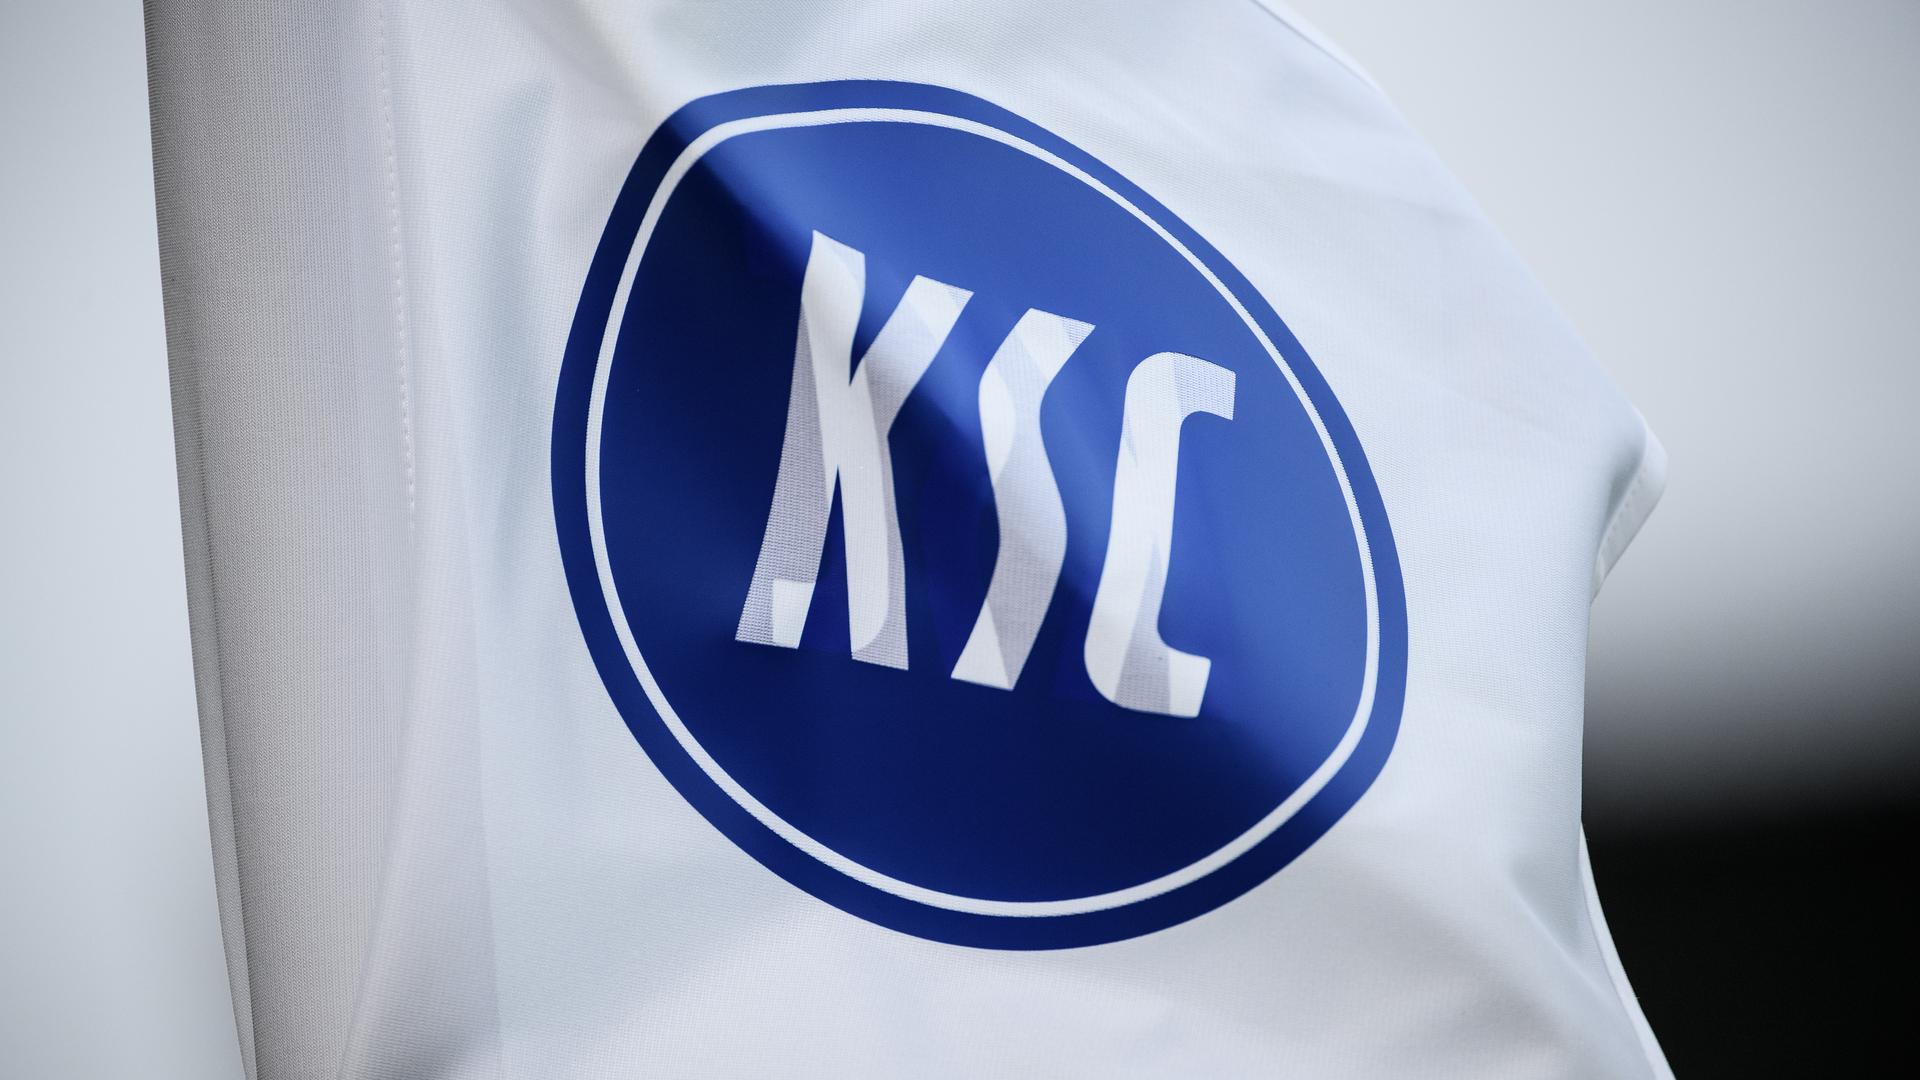 Feature, Schmuckbild, Hintergrund, Hintergrundbild, Symbol, Symboldbild KSC Fahne, Eckballfahne.  GES/ Fussball/ 2. Bundesliga: Karlsruher SC - SpVgg Greuther Fuerth, 14.12.2019  Football / Soccer: 2. League: Karlsruhe vs Fuerth, Karlsruhe, December 14, 2019